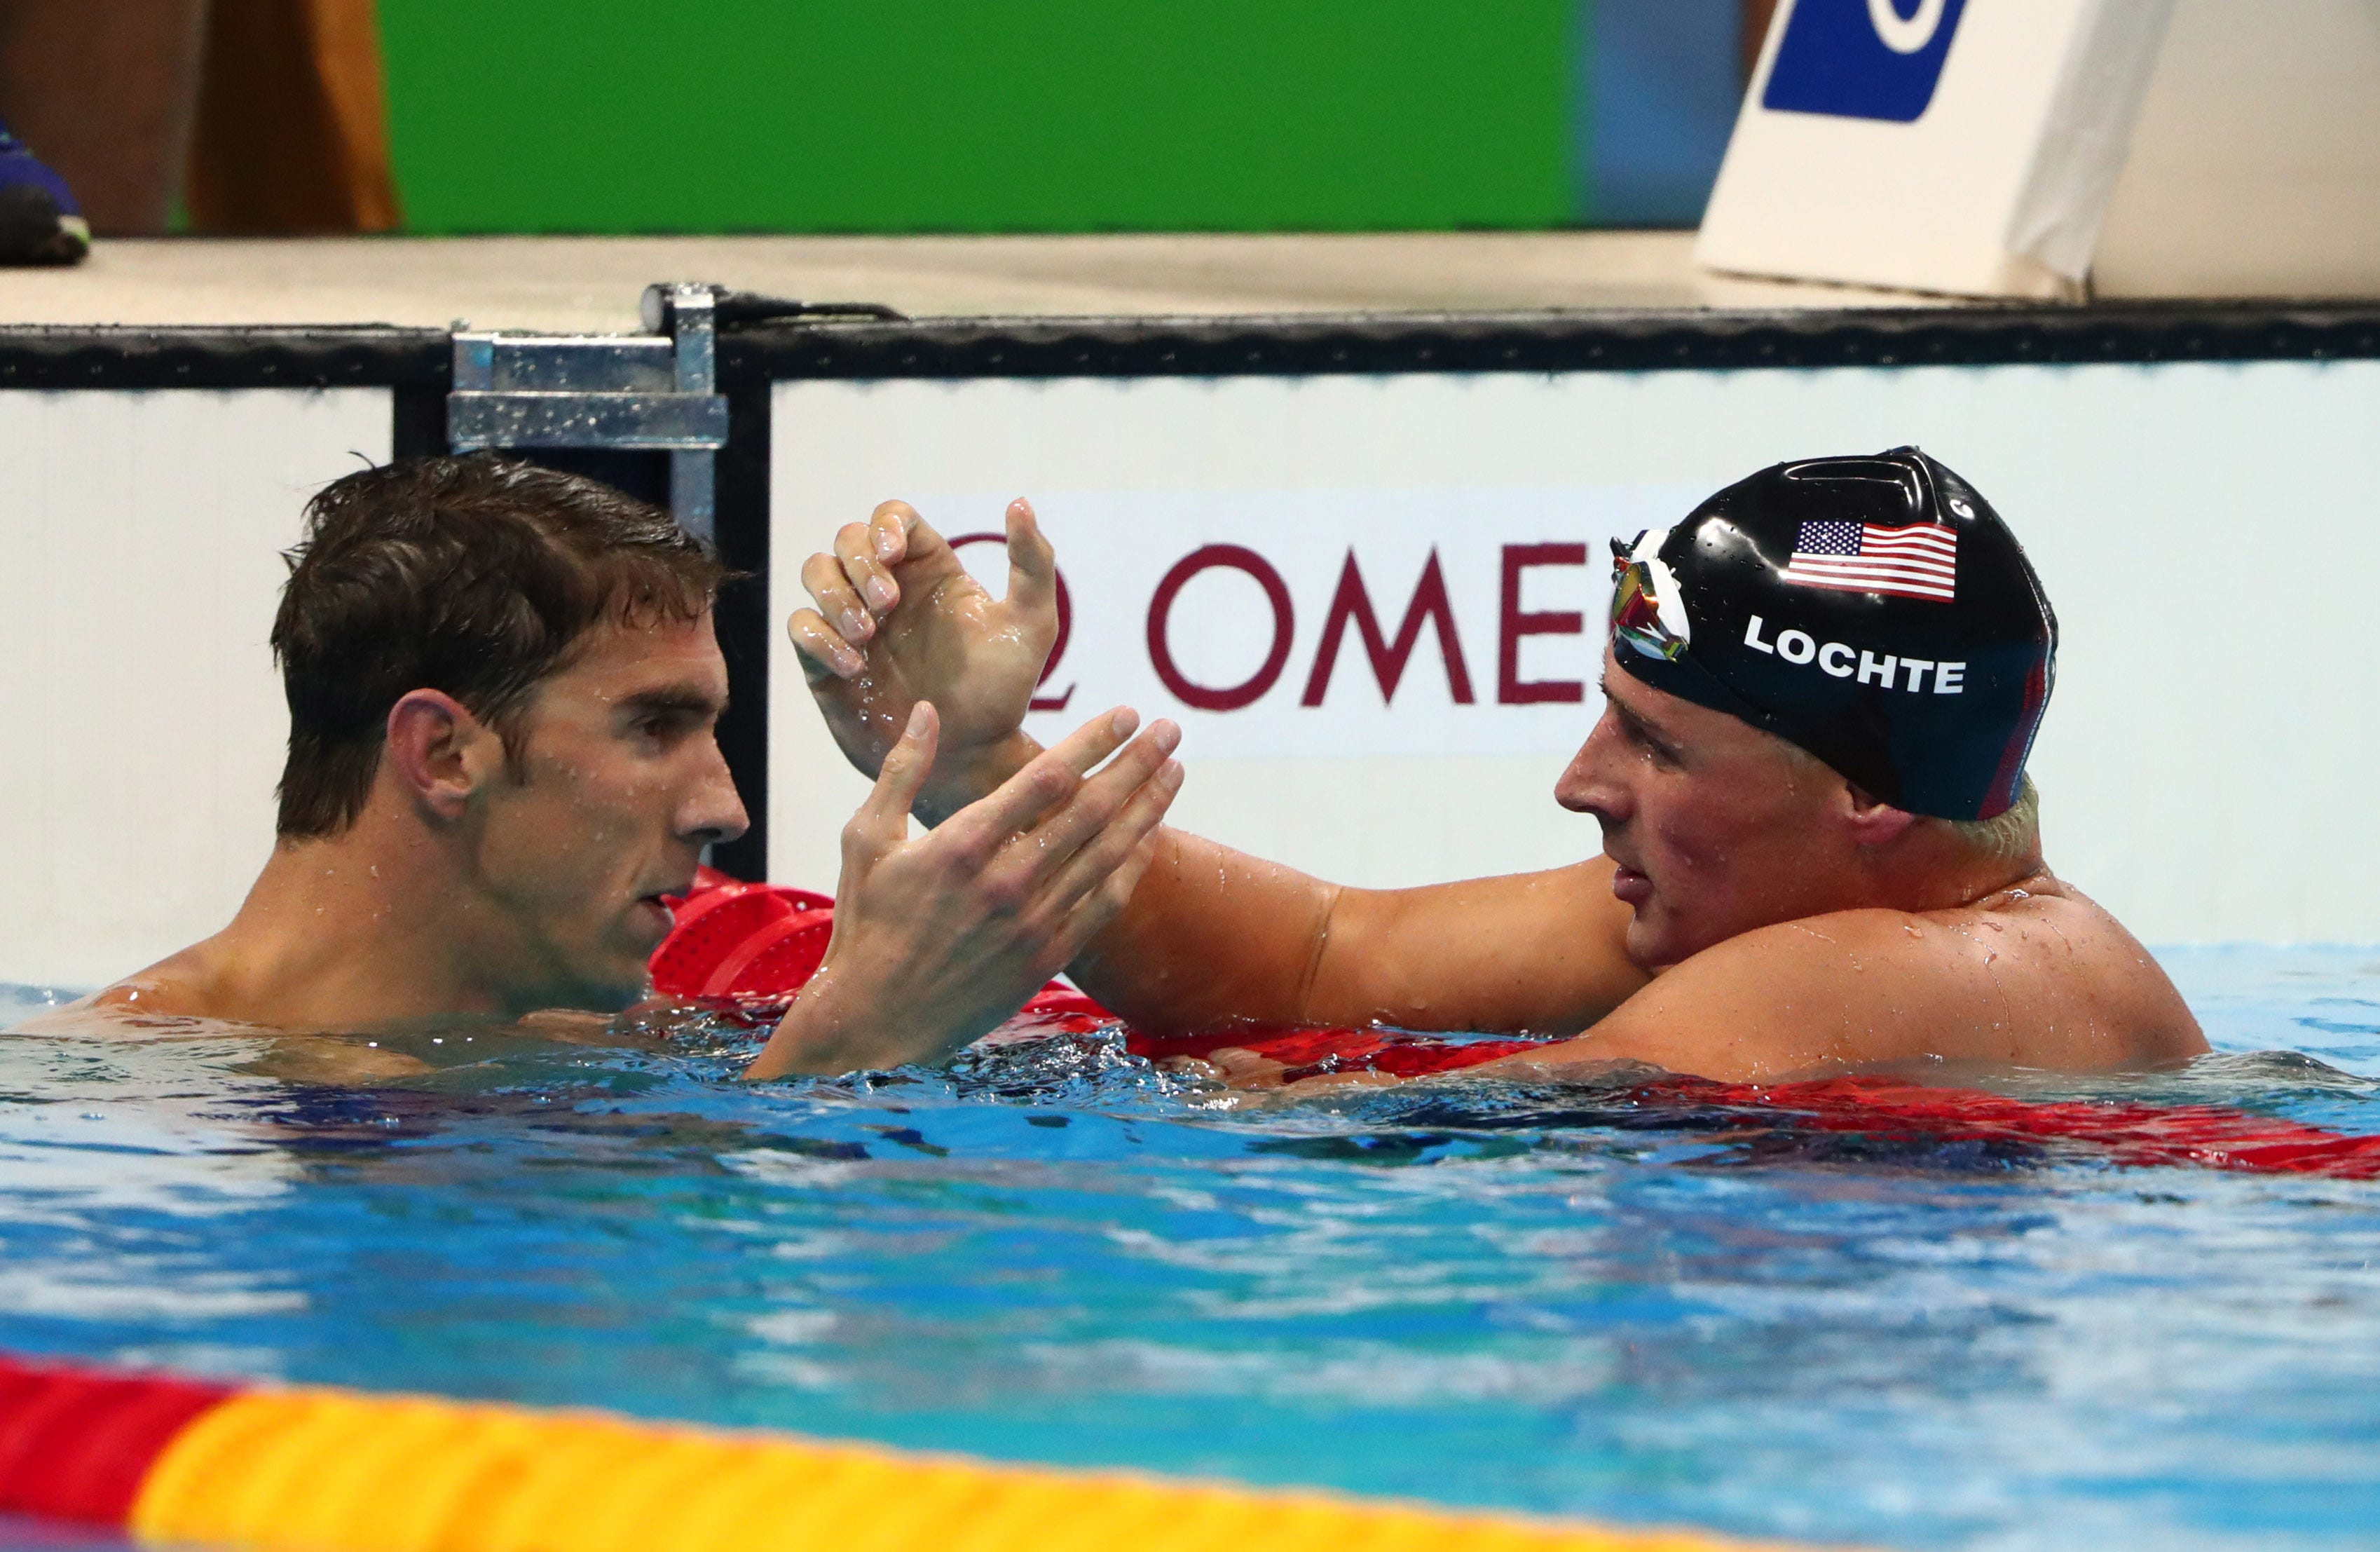 Frustrated with his training, Ryan Lochte got some help from Michael Phelps, a longtime rival in the pool